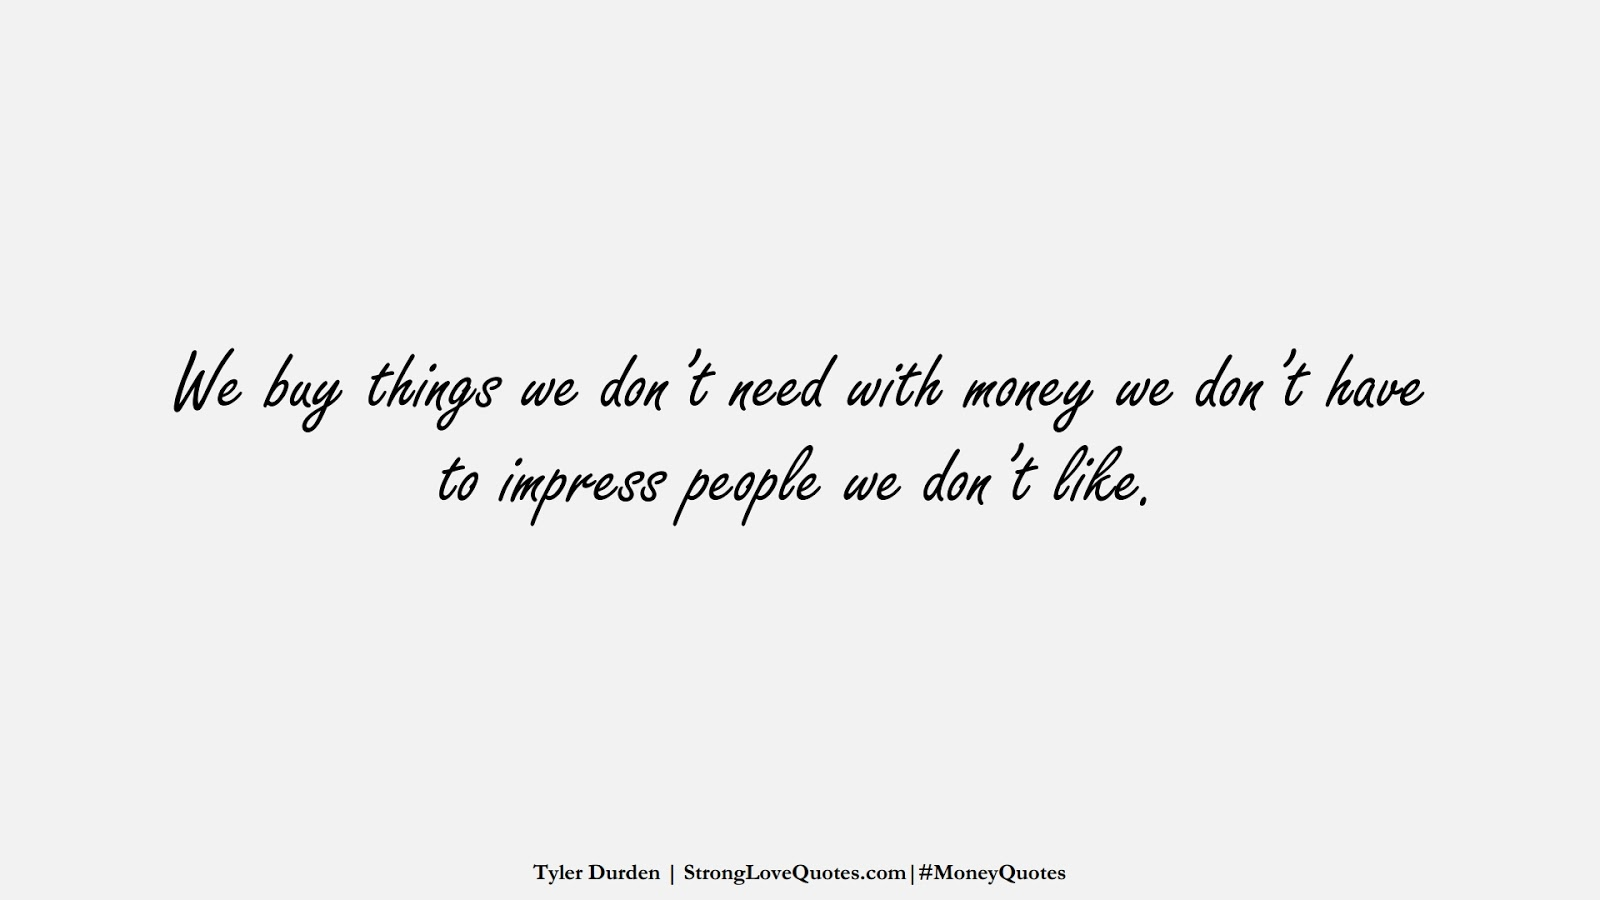 We buy things we don't need with money we don't have to impress people we don't like. (Tyler Durden);  #MoneyQuotes